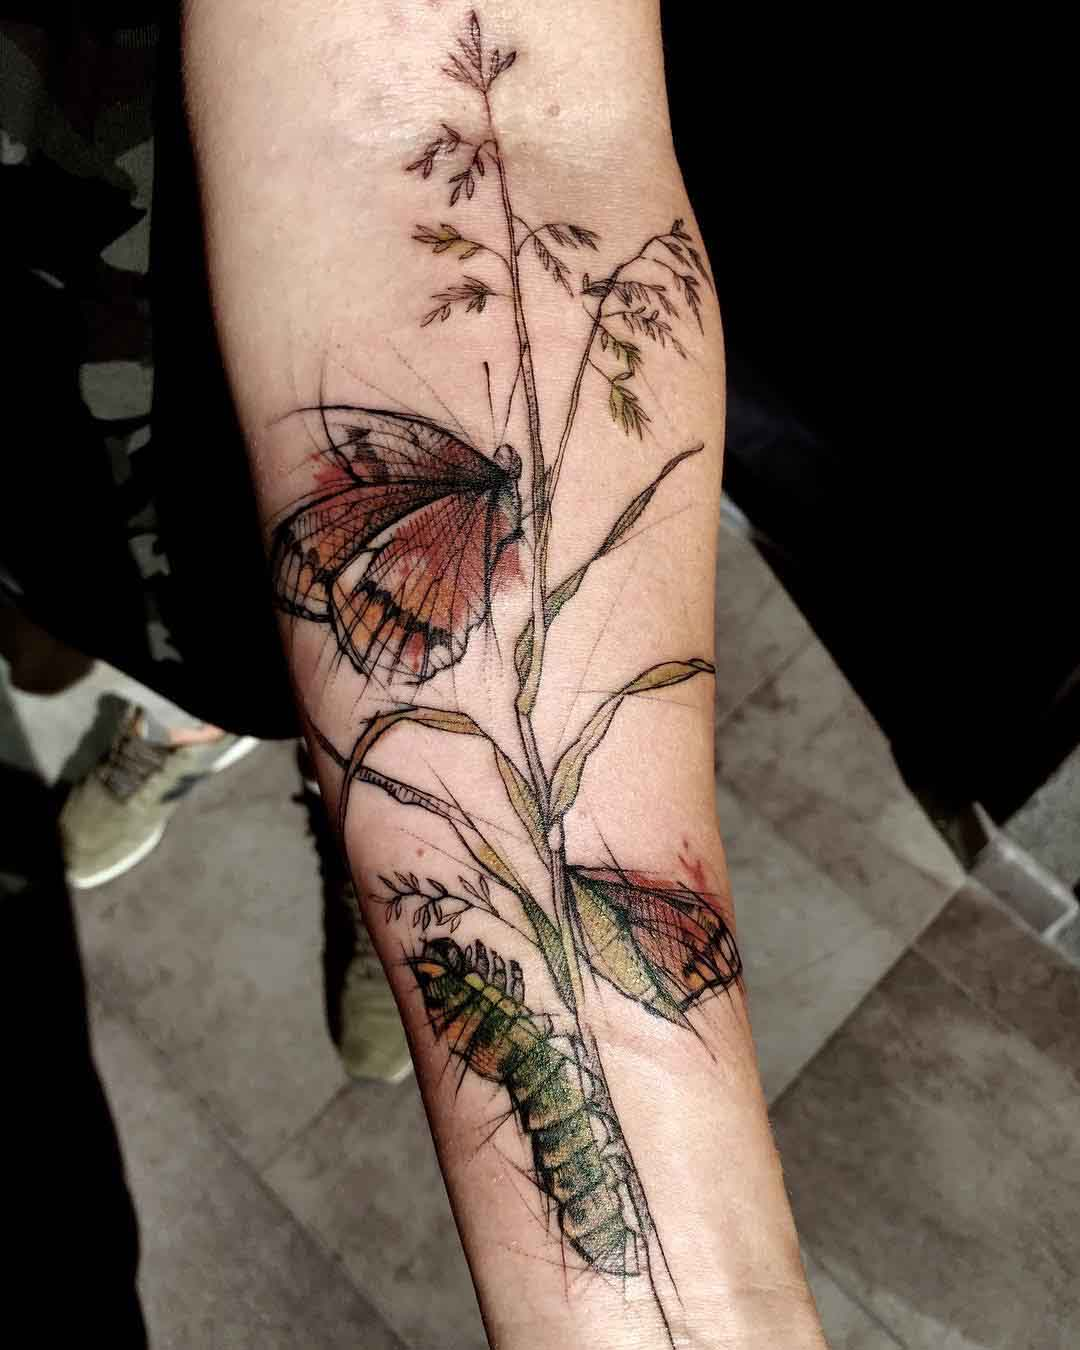 butterfly and catterpillar tattoo